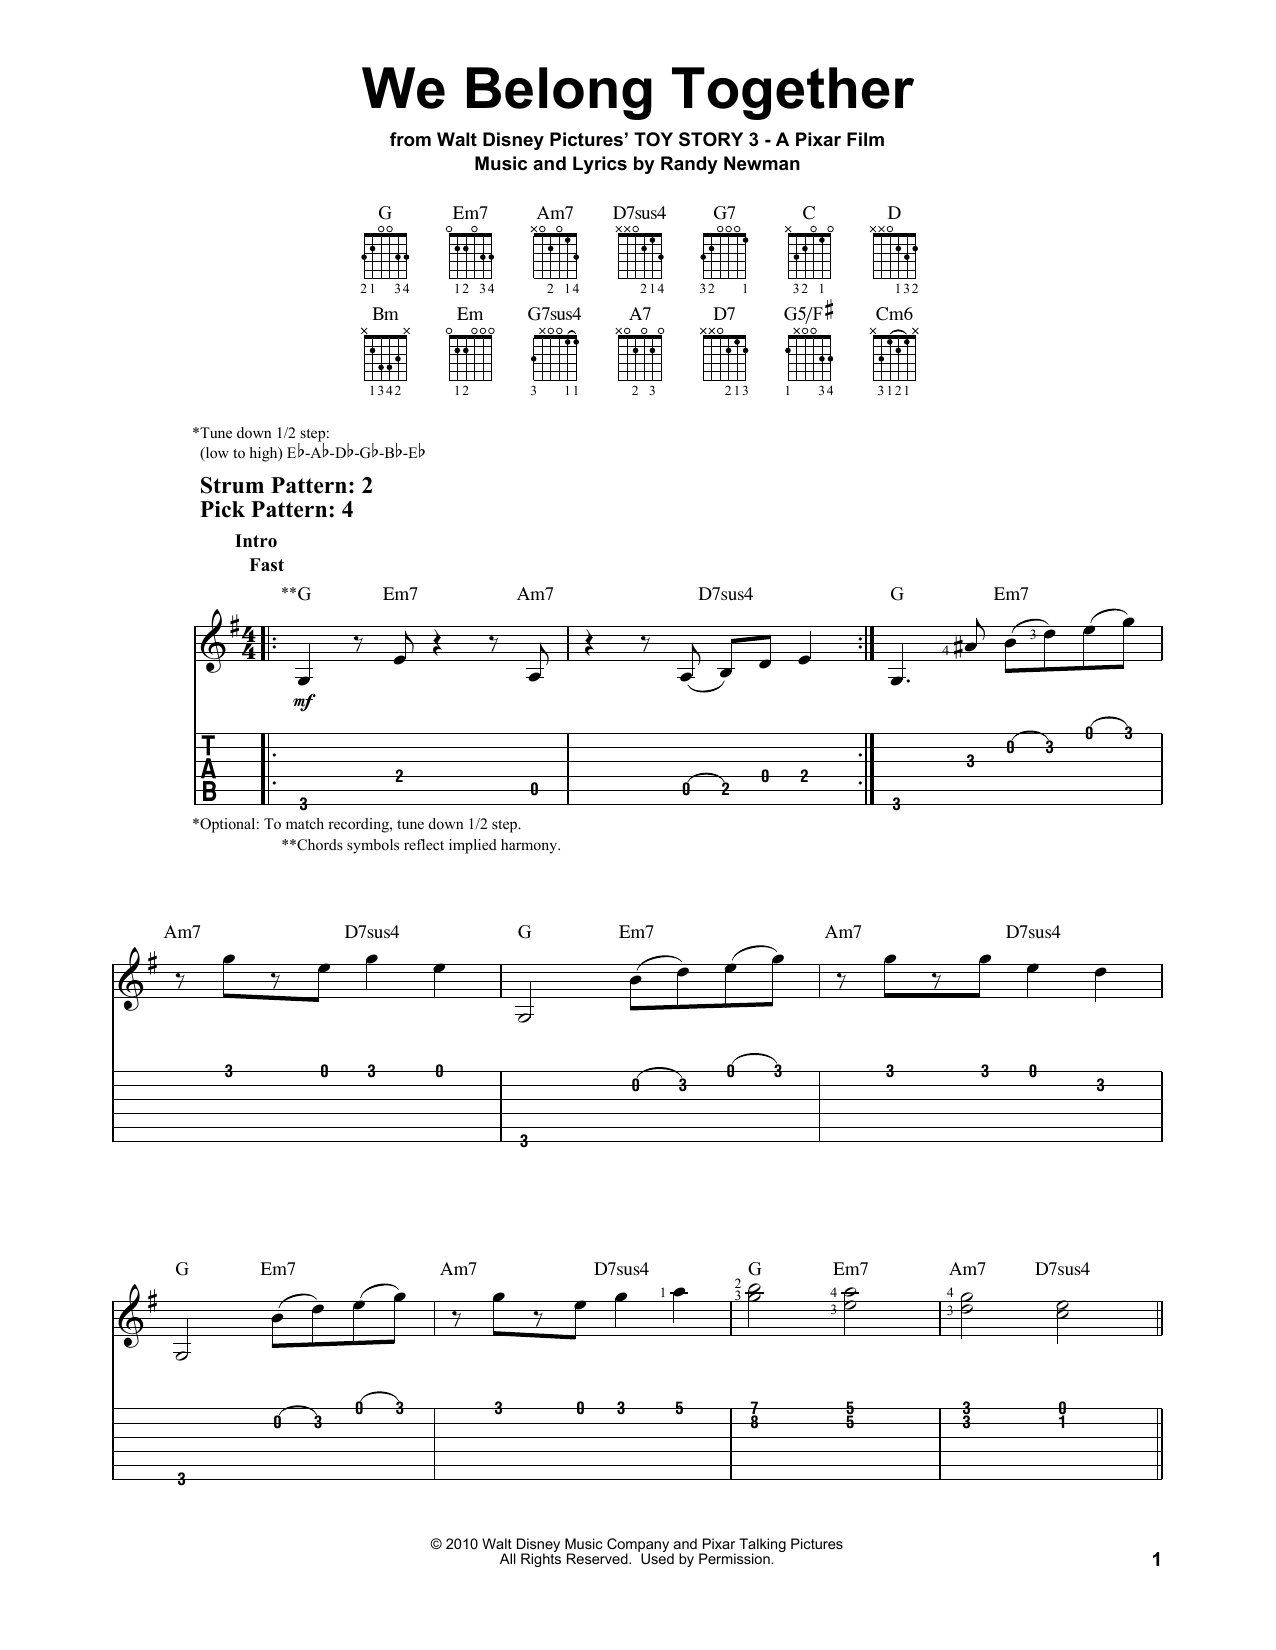 We belong together by randy newman easy guitar tab guitar the most accurate tab hexwebz Image collections